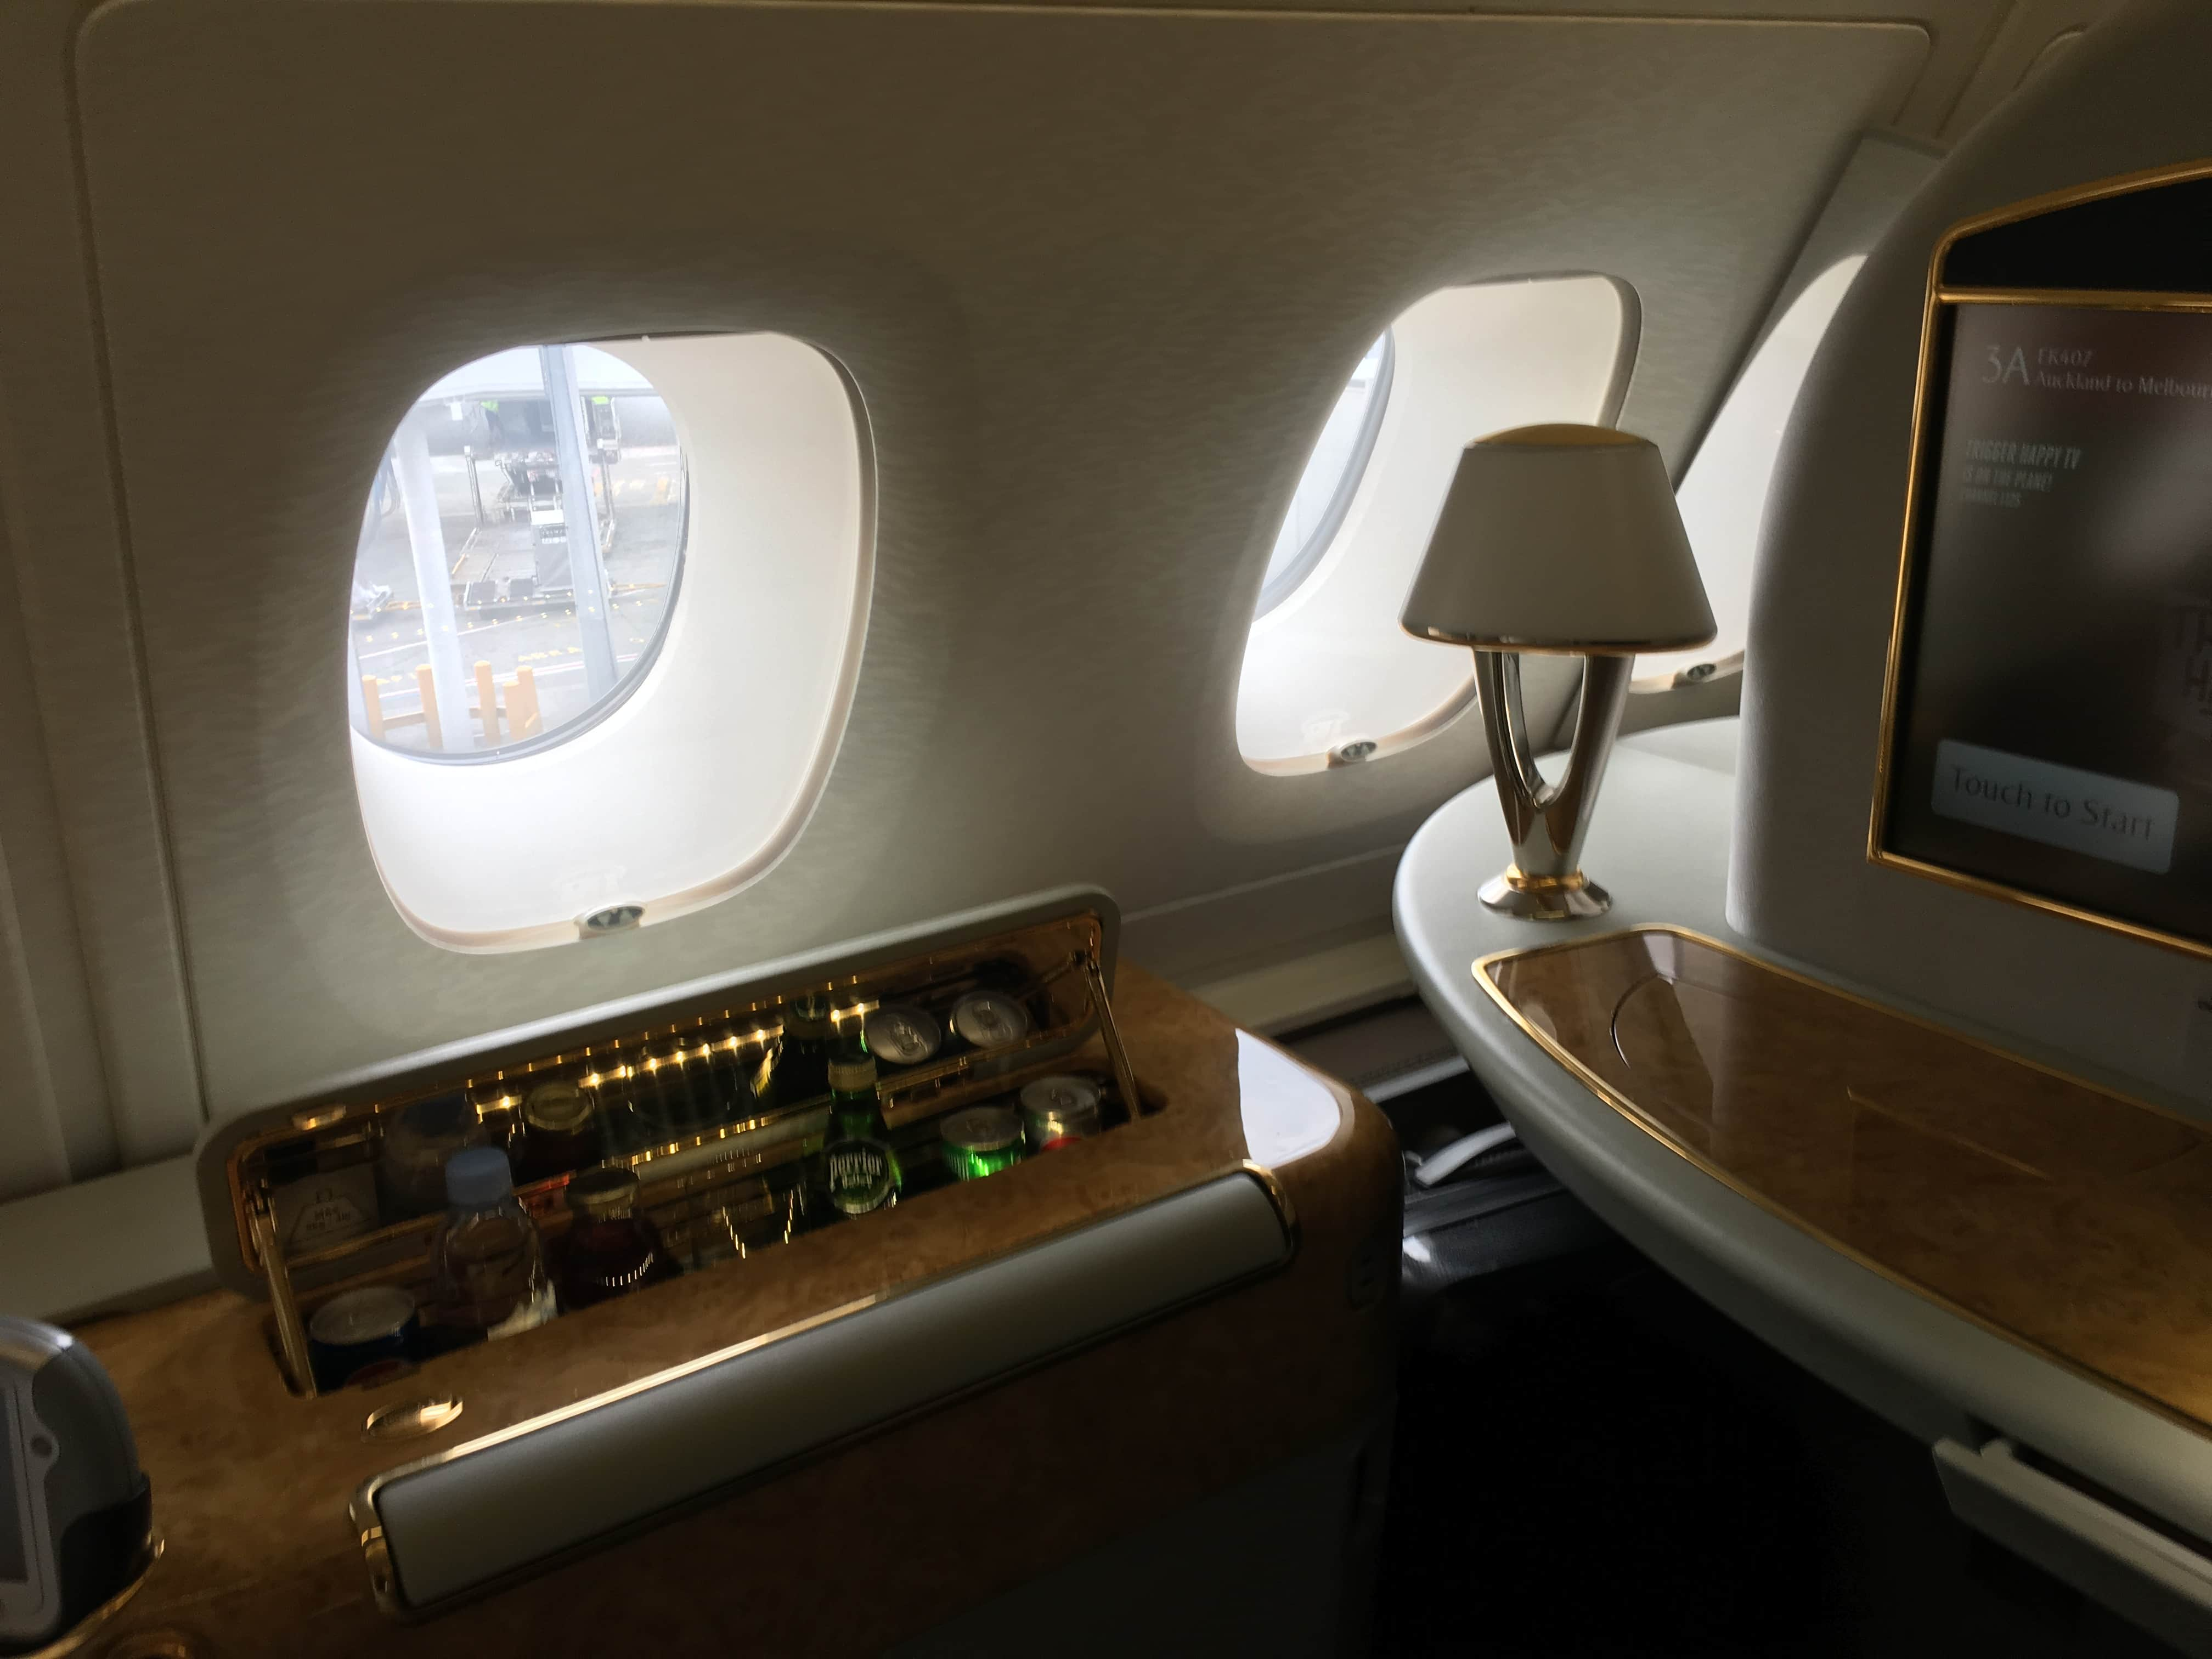 Flashy & fancy: Emirates First Class Suite A380